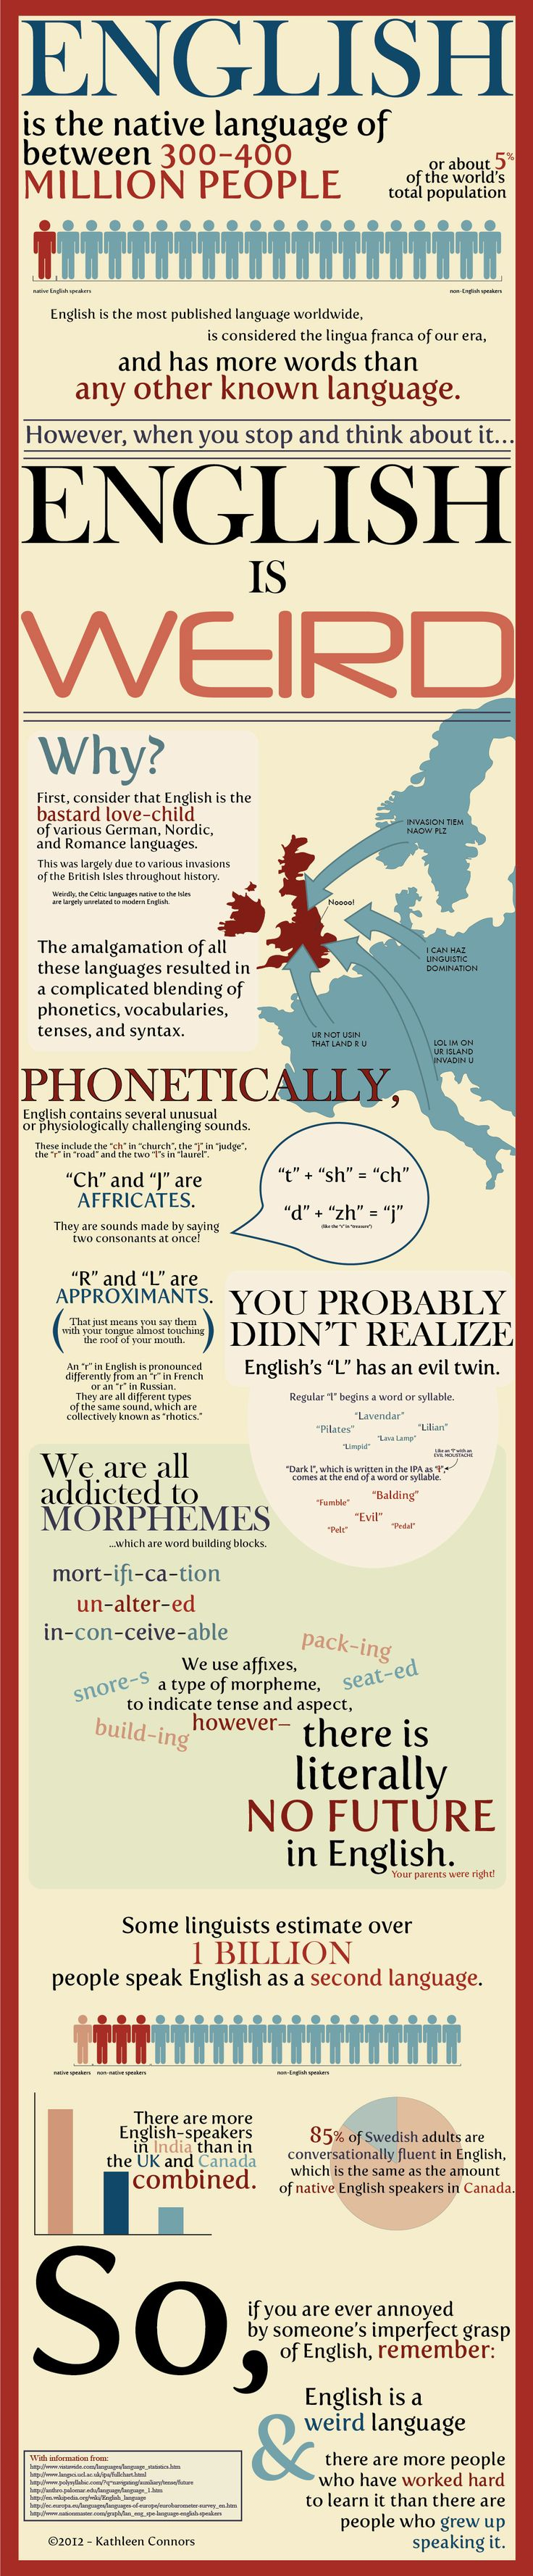 "Infographic | Eccentricities of the English language & English as a second language ""if you are ever annoyed by someone's imperfect grasp of English, remember: English is a weird language & there are more people who have worked hard to learn it than there are people who grew up speaking it"""